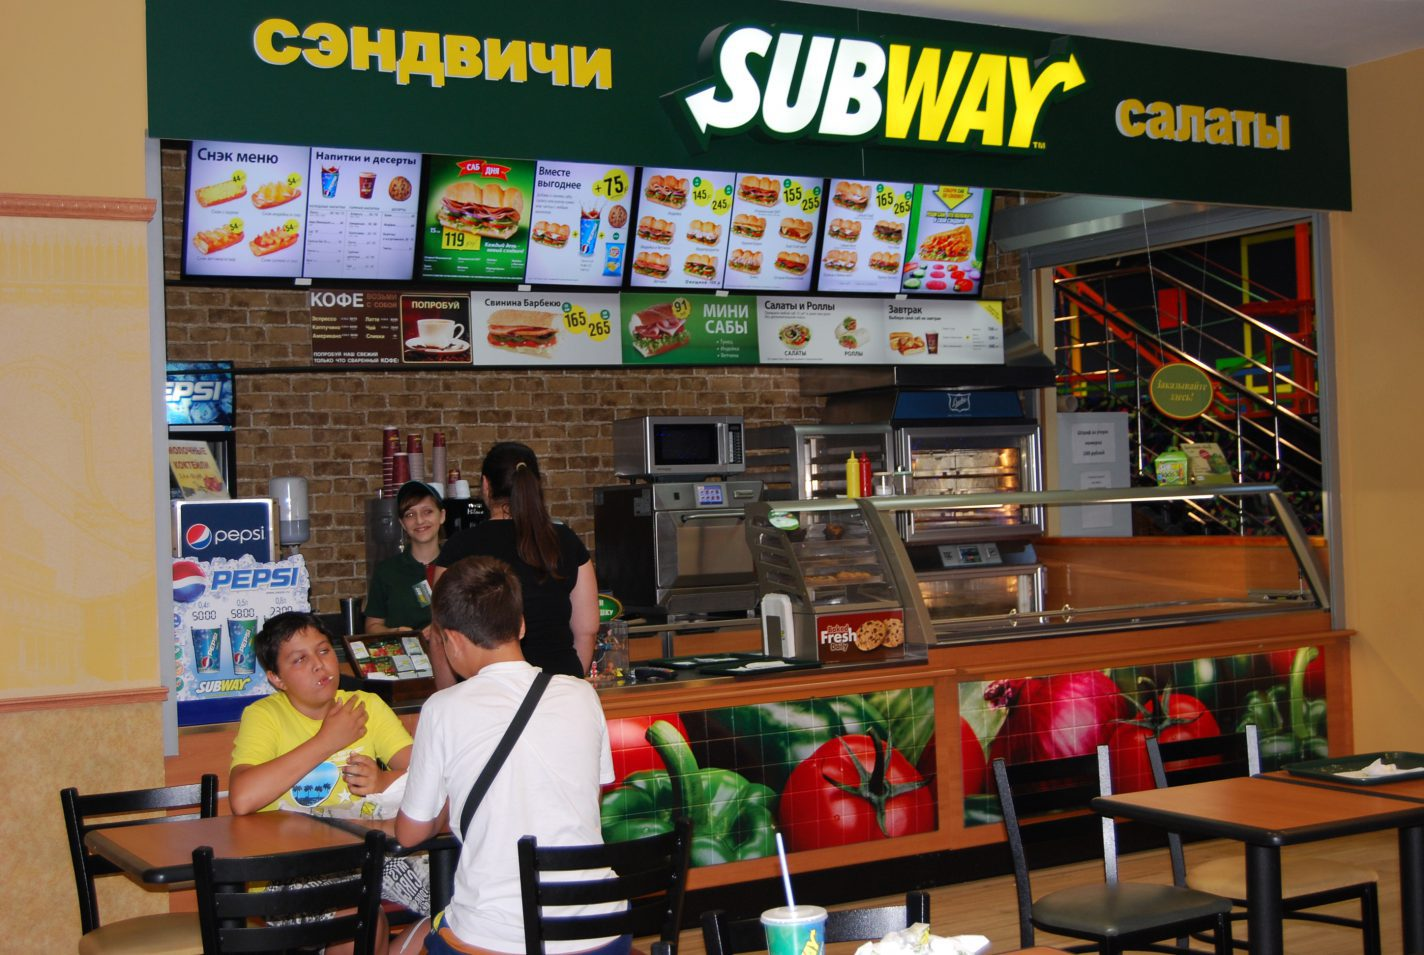 proposal to franchise a subway restaurant Franchise grade, a franchisee polling and review service, ranked subway number 468 in its latest report firehouse subs and jersey mike's subs were numbers 107 and 108, respectively.